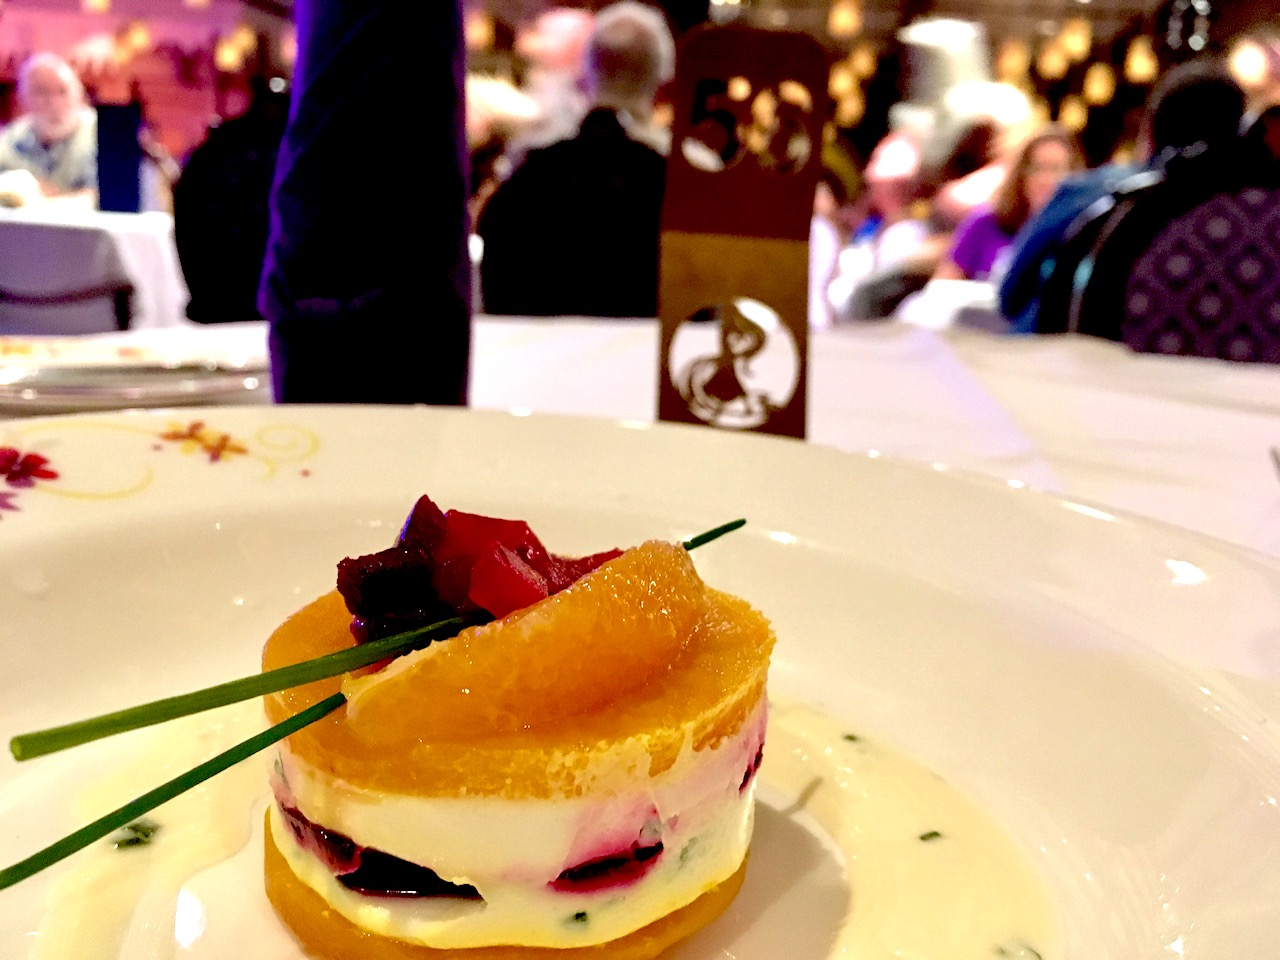 Creamy Goat Cheese and Yellow Beets at Rapunzel's Royal Table on board the Disney Magic